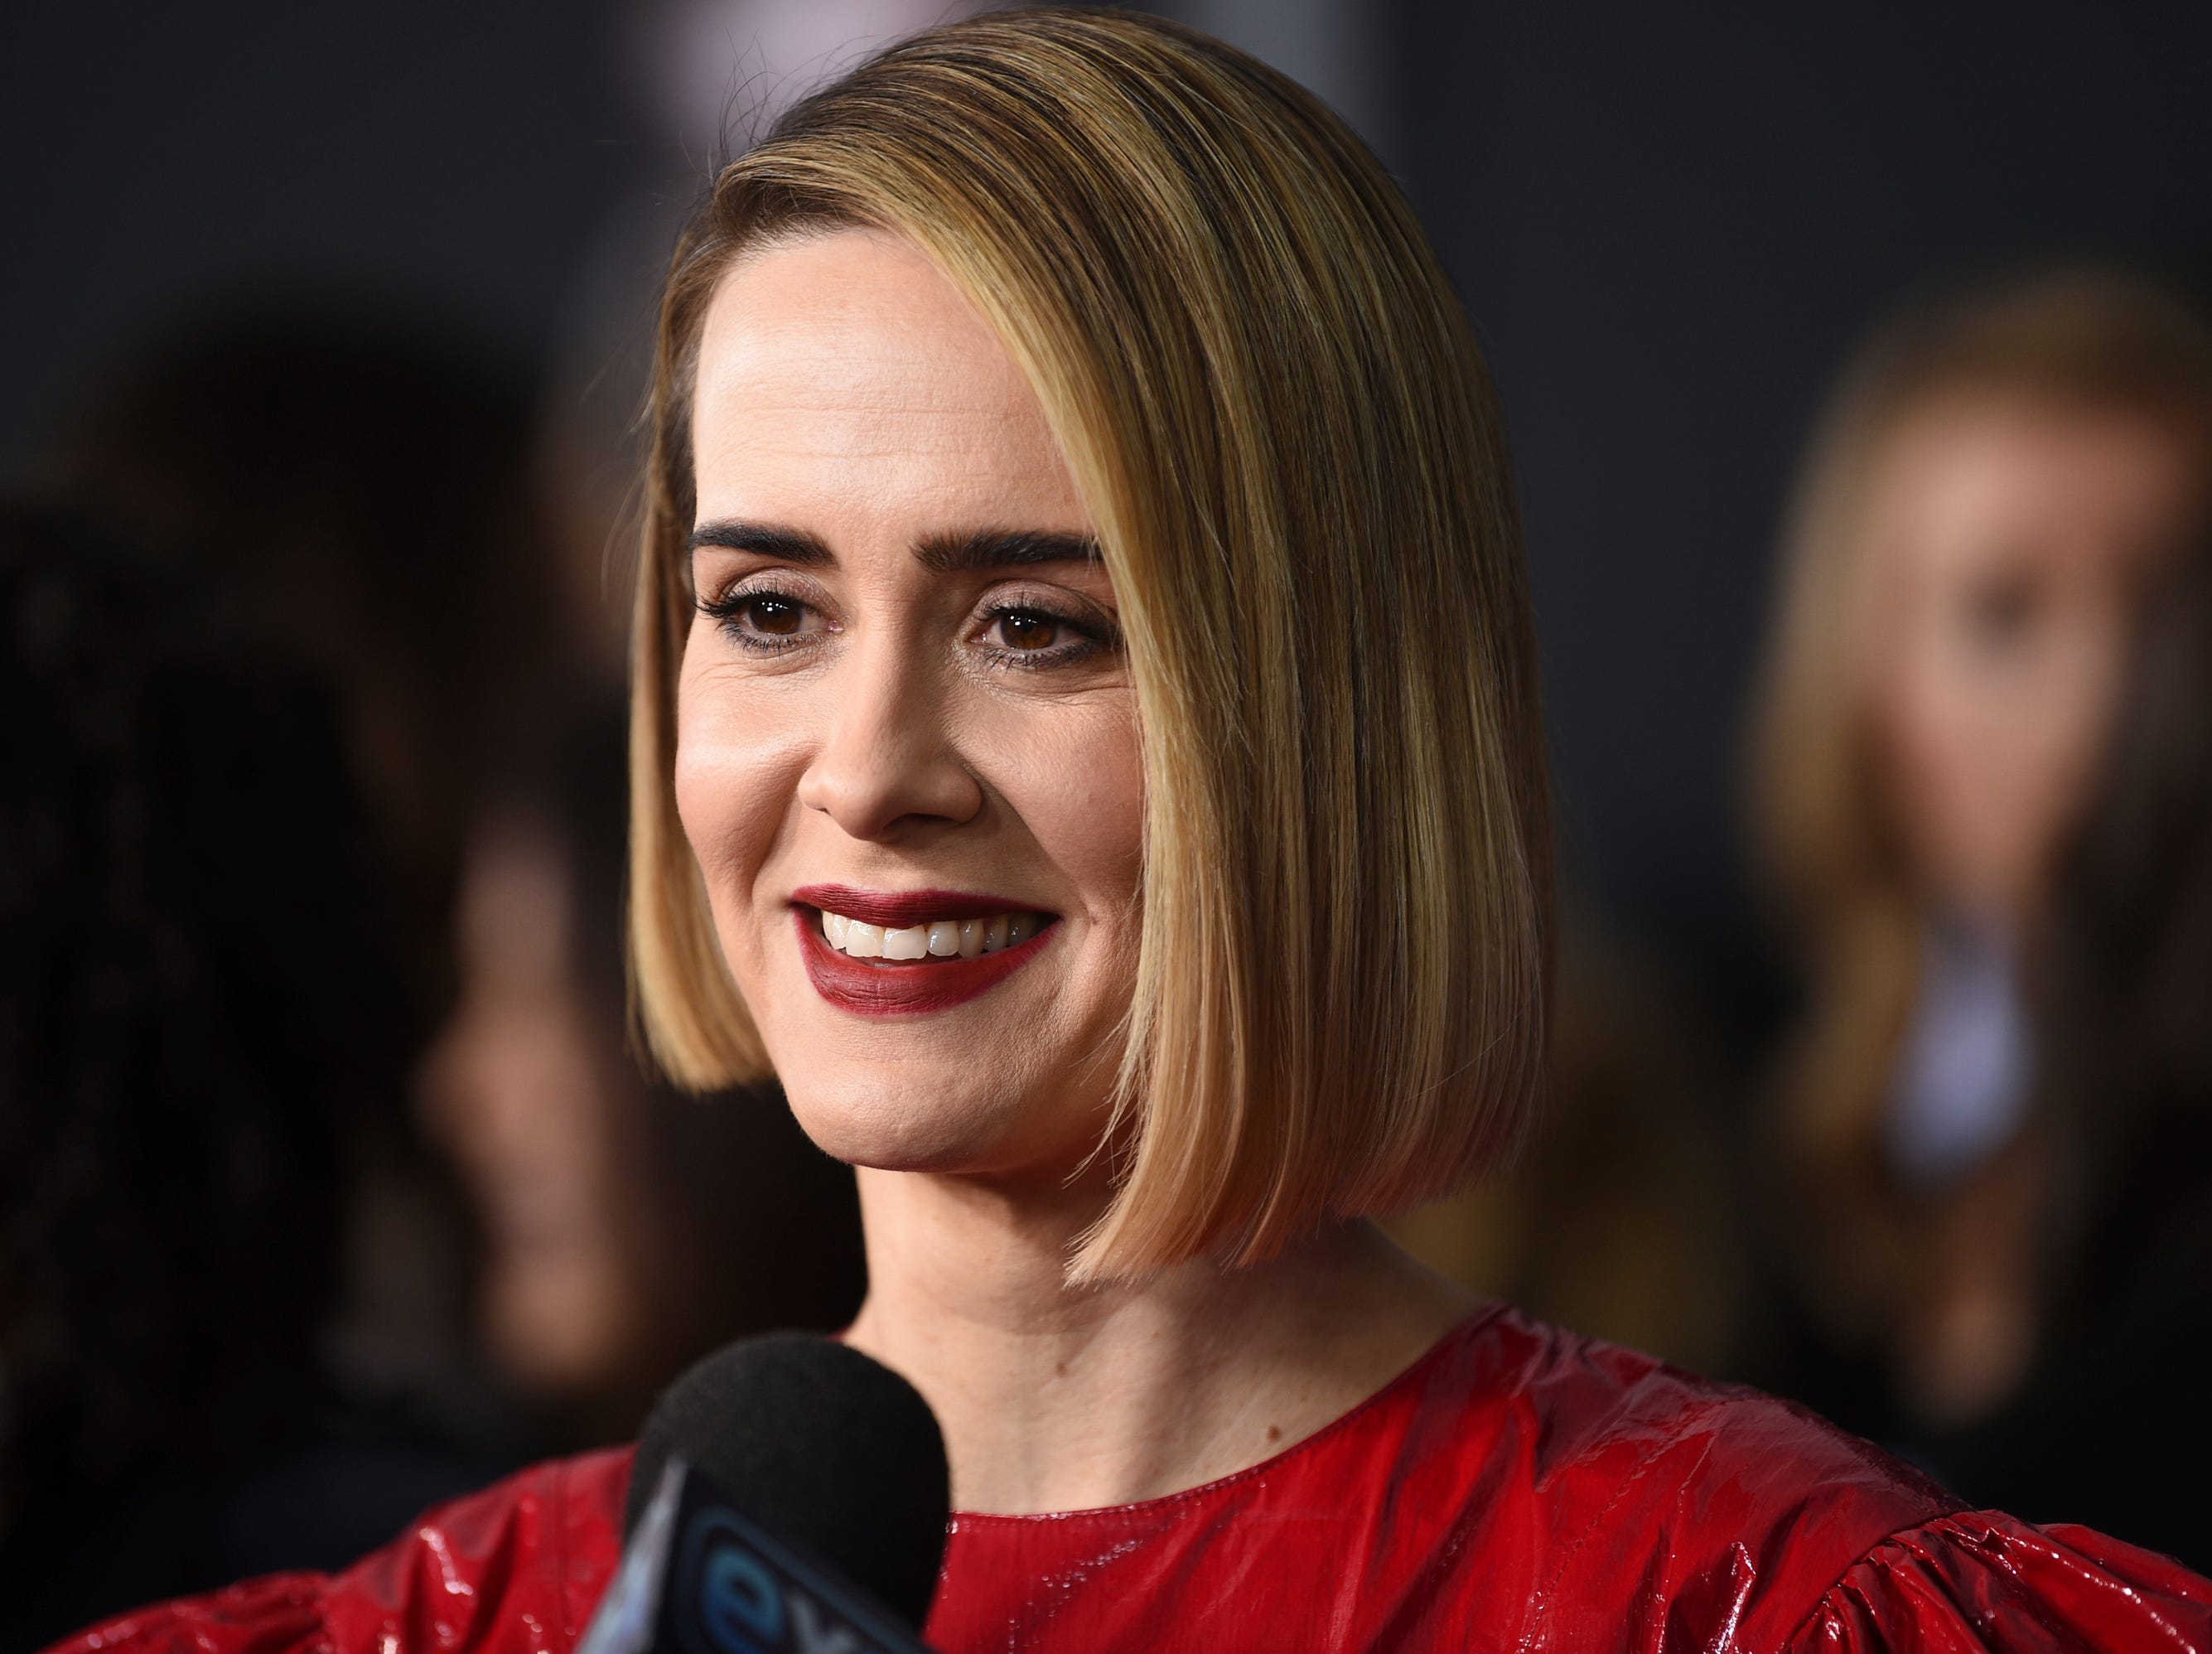 """Sarah Paulson speaks with journalists as she attends the premiere of """"Glass"""" at the SVA Theatre on Tuesday, Jan. 15, 2019, in New York."""